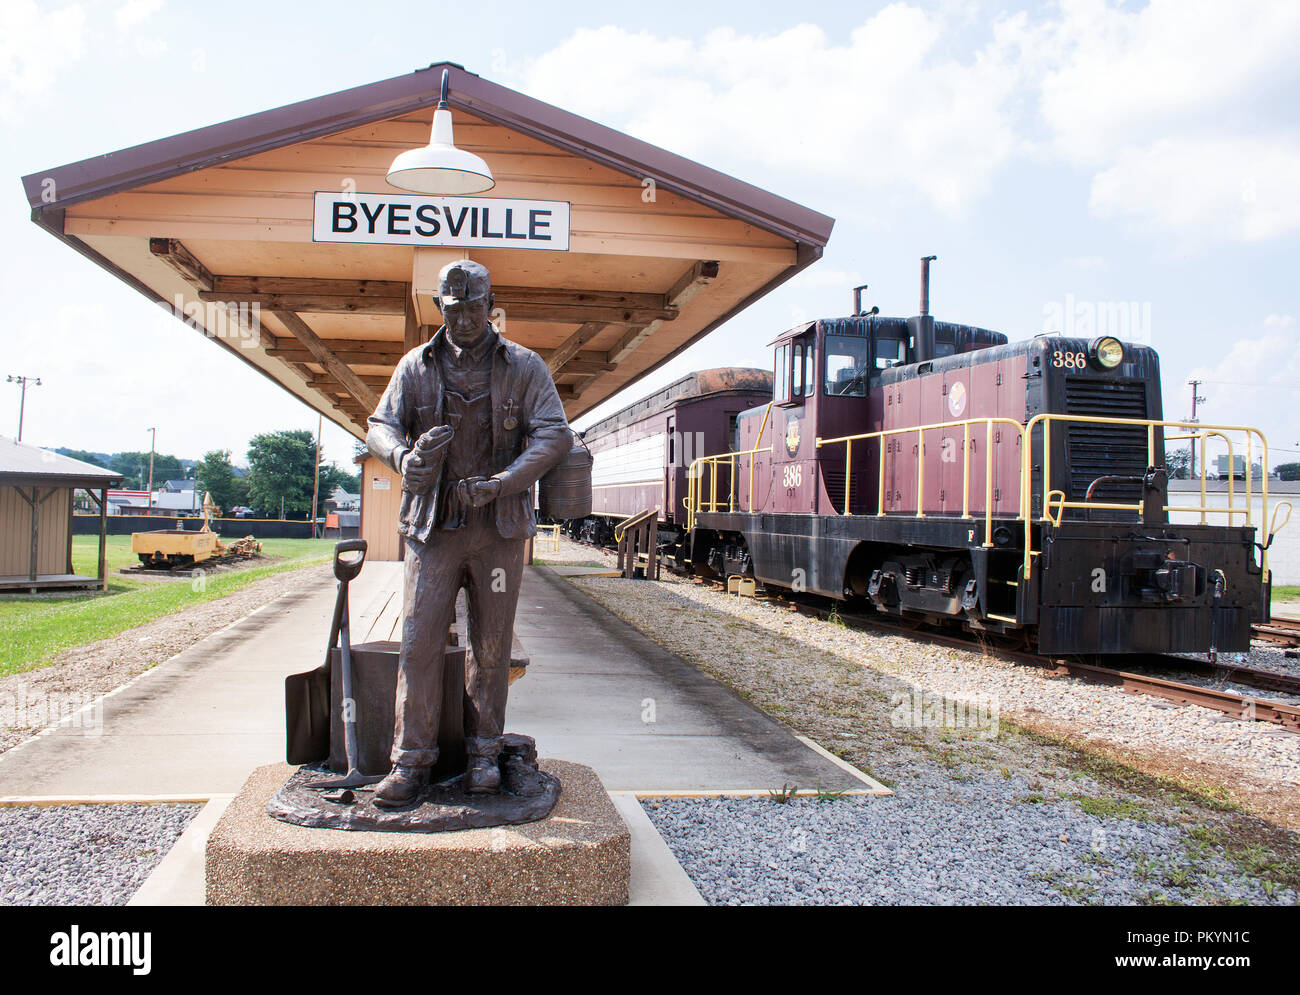 Coal Miner Statue in Byesville Ohio - Stock Image